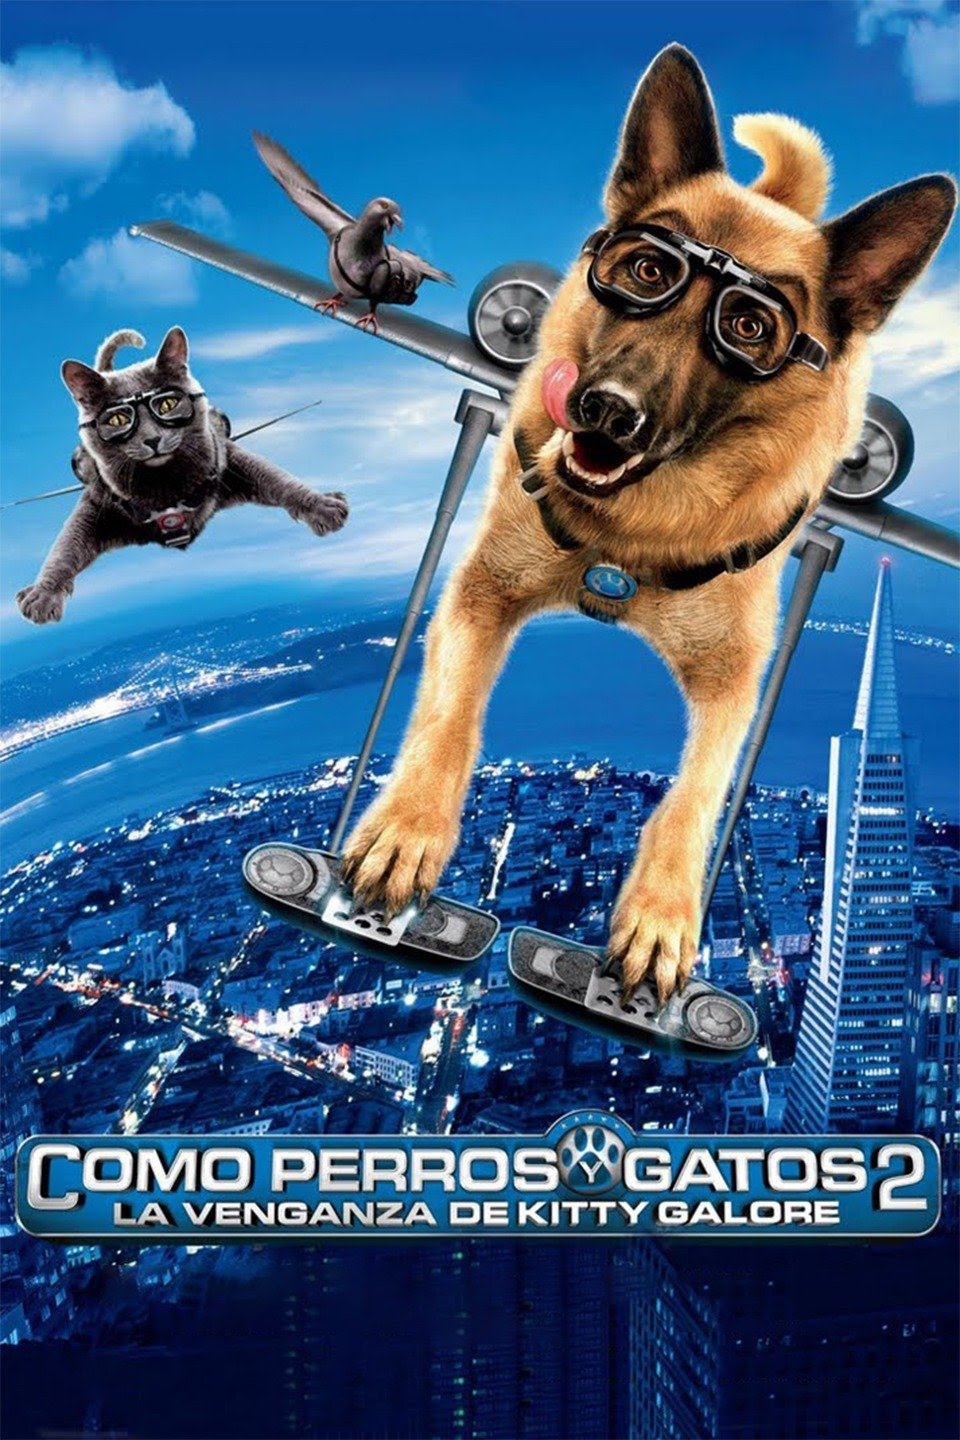 Como perros y gatos 2: la venganza de Kitty Galore